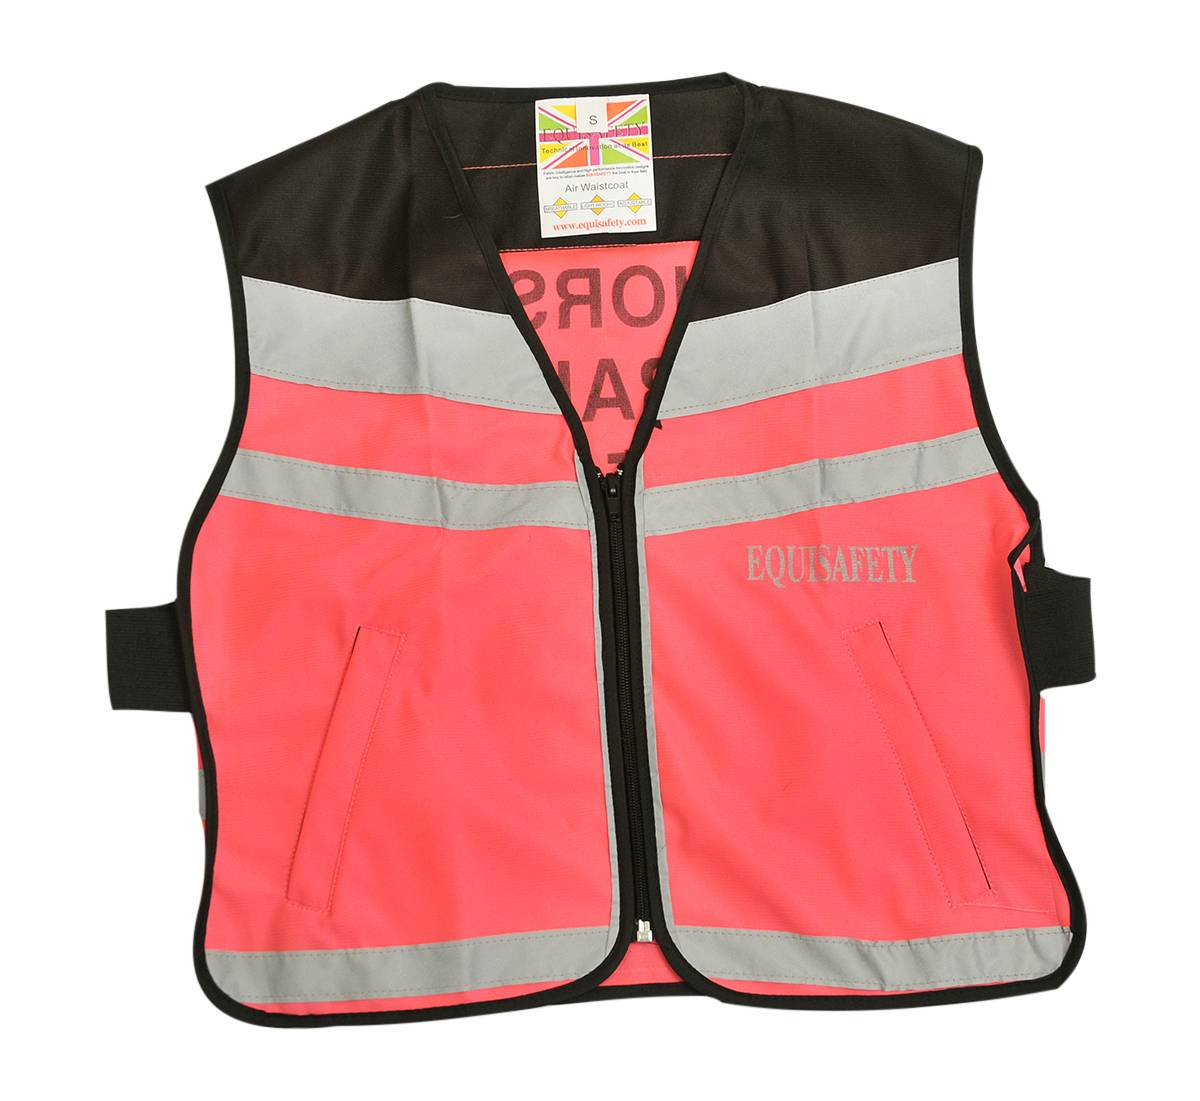 Equisafety Ladies' Reflective Air Waistcoat - Horse In Training